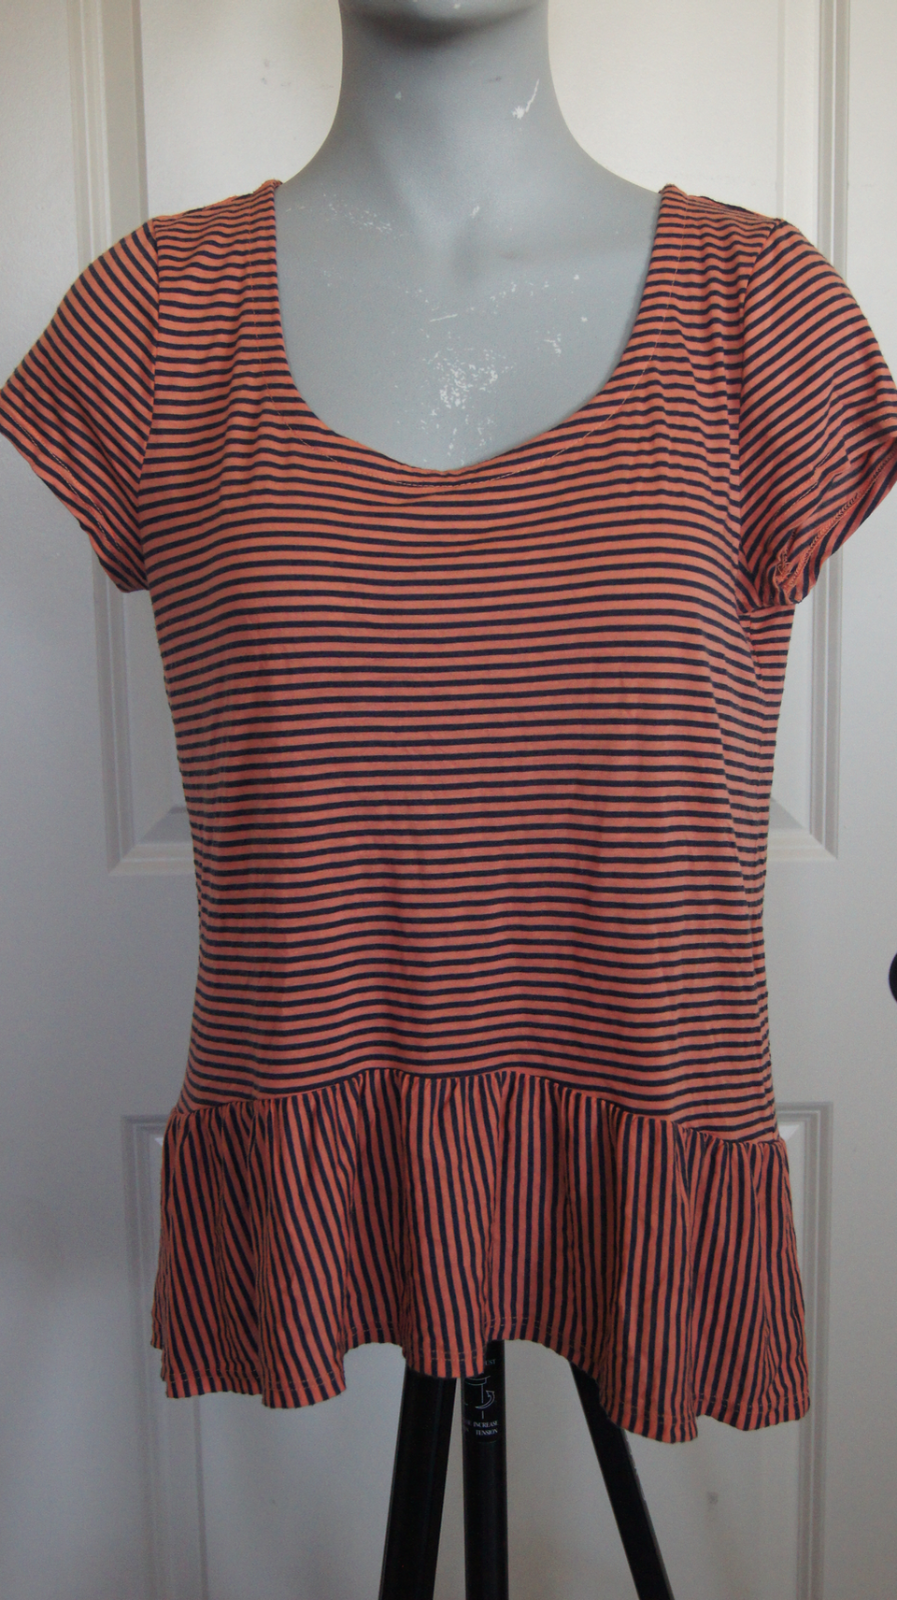 Splendid L Coral/Navy Striped Hi Low Peplum Short Sleeve Jersey Knit Top N1